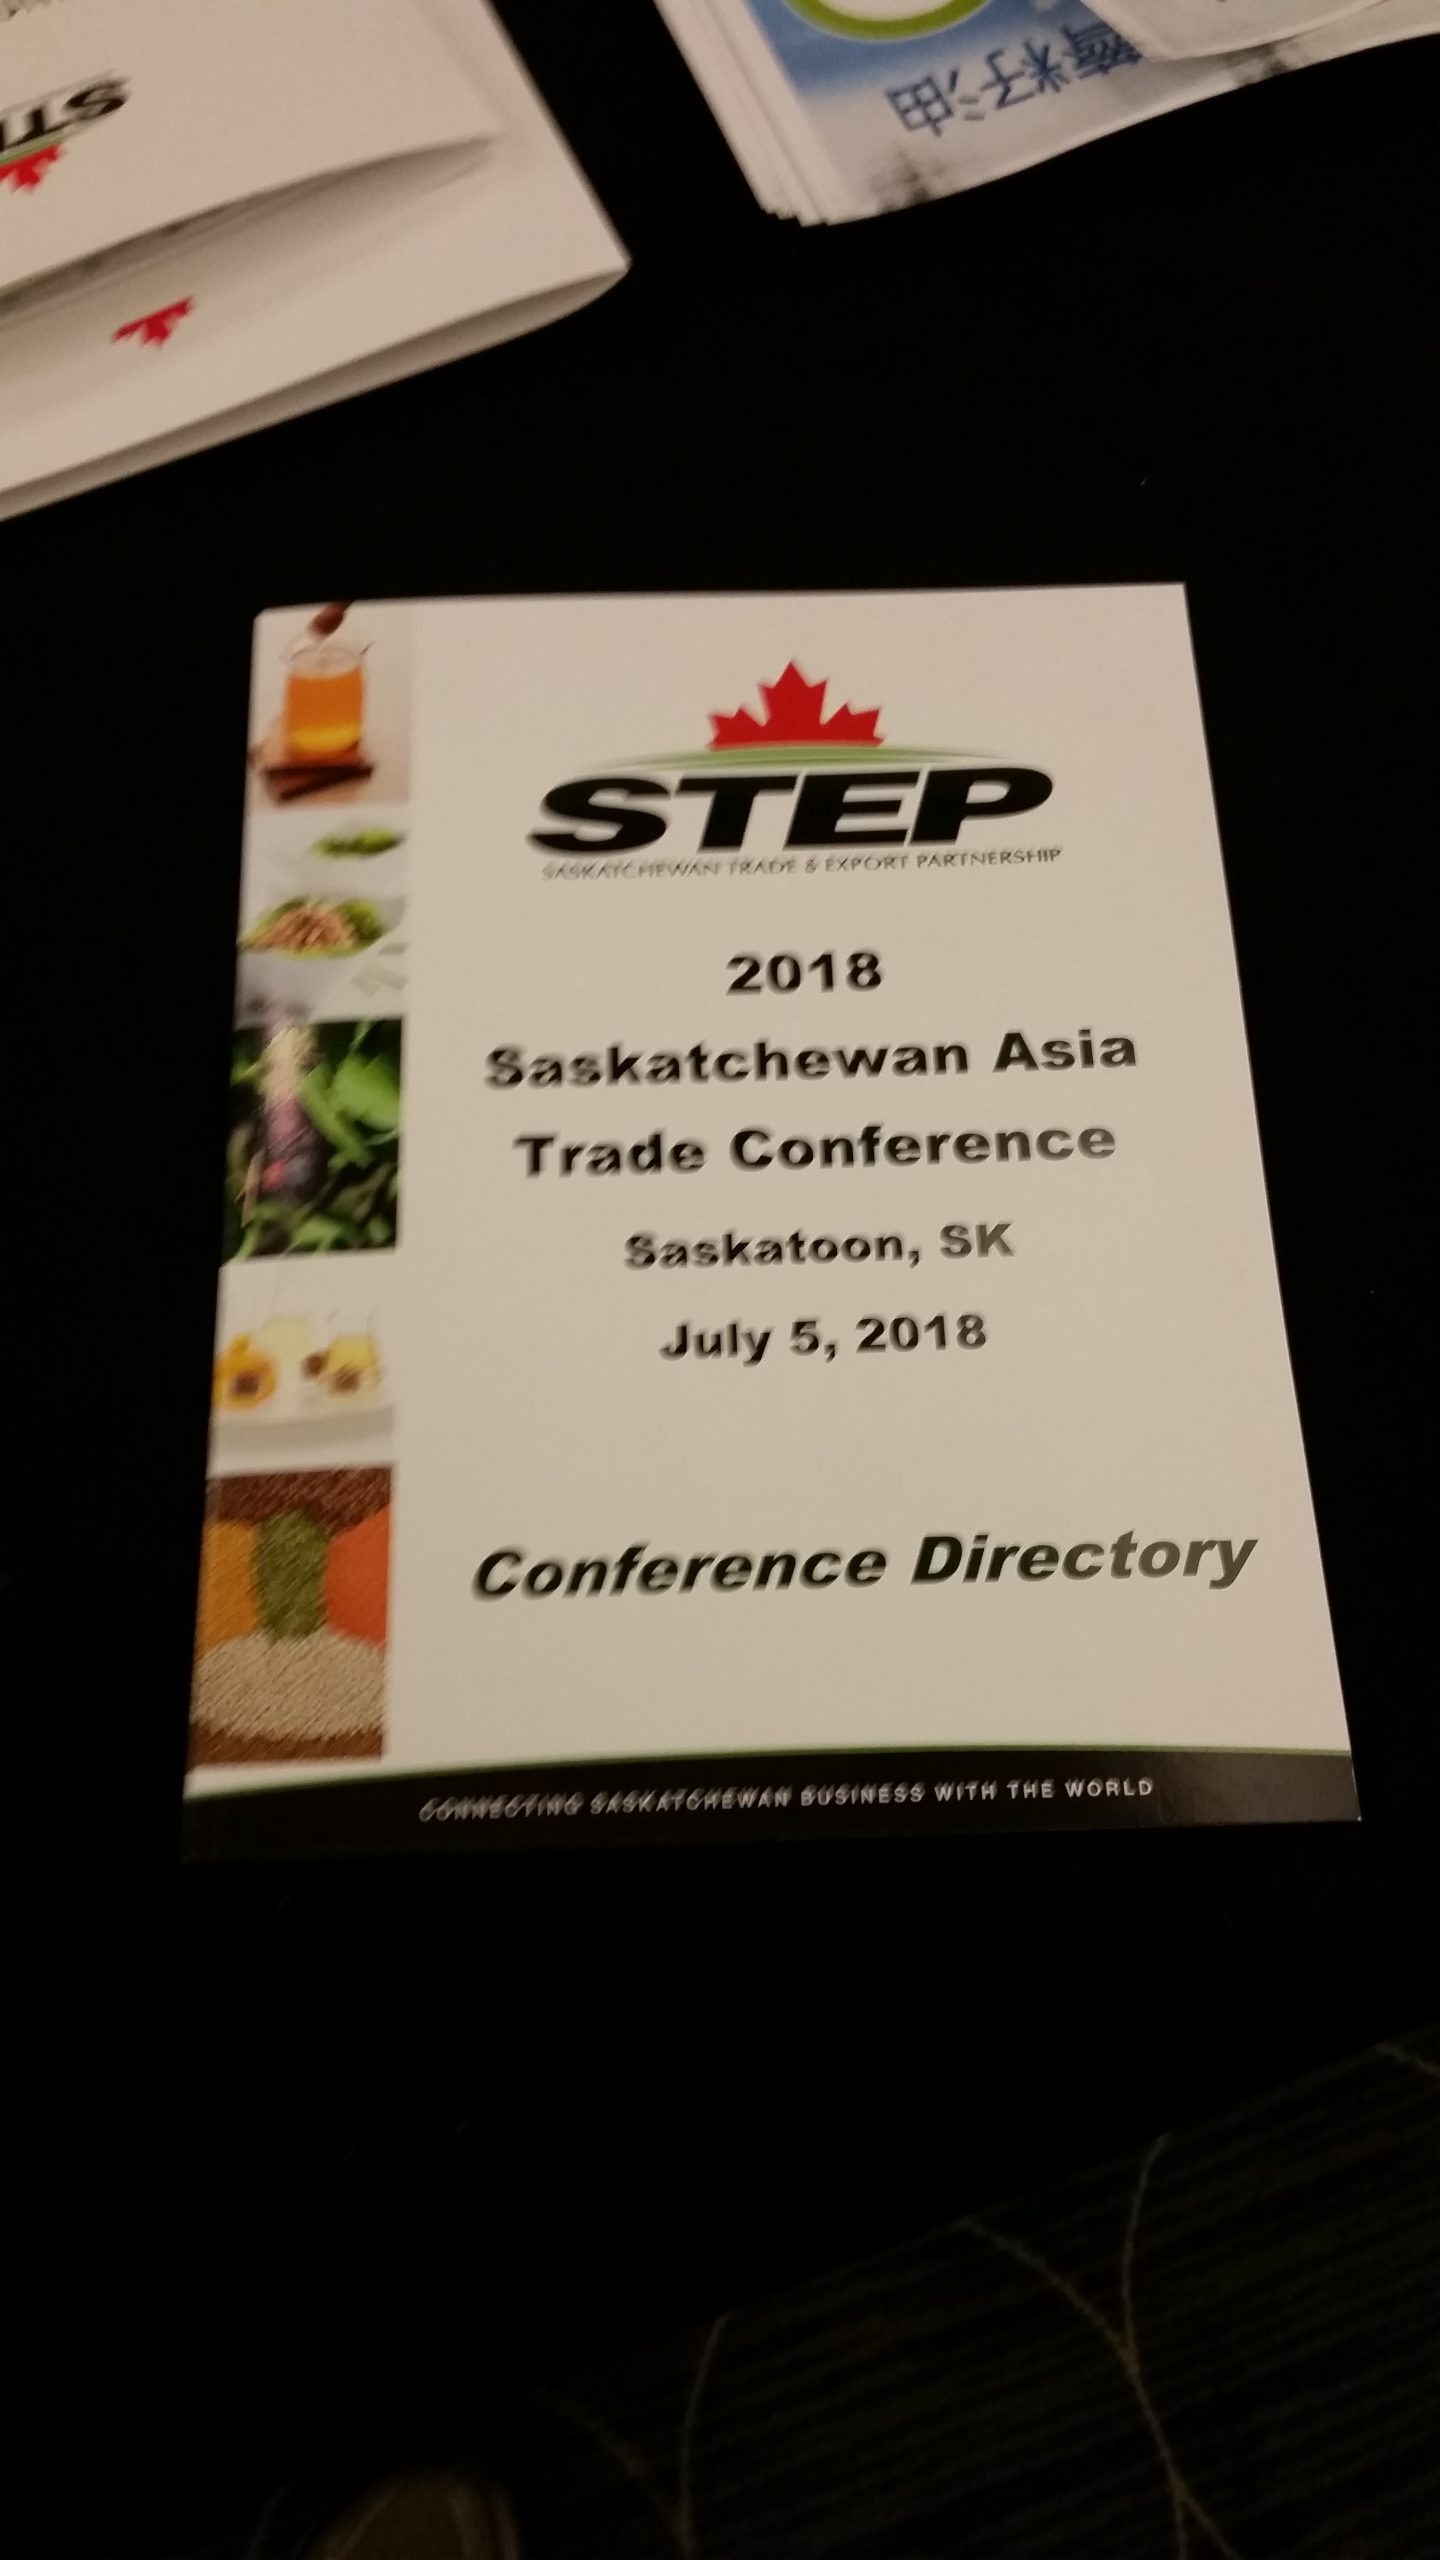 China Open To Saskatchewan Business